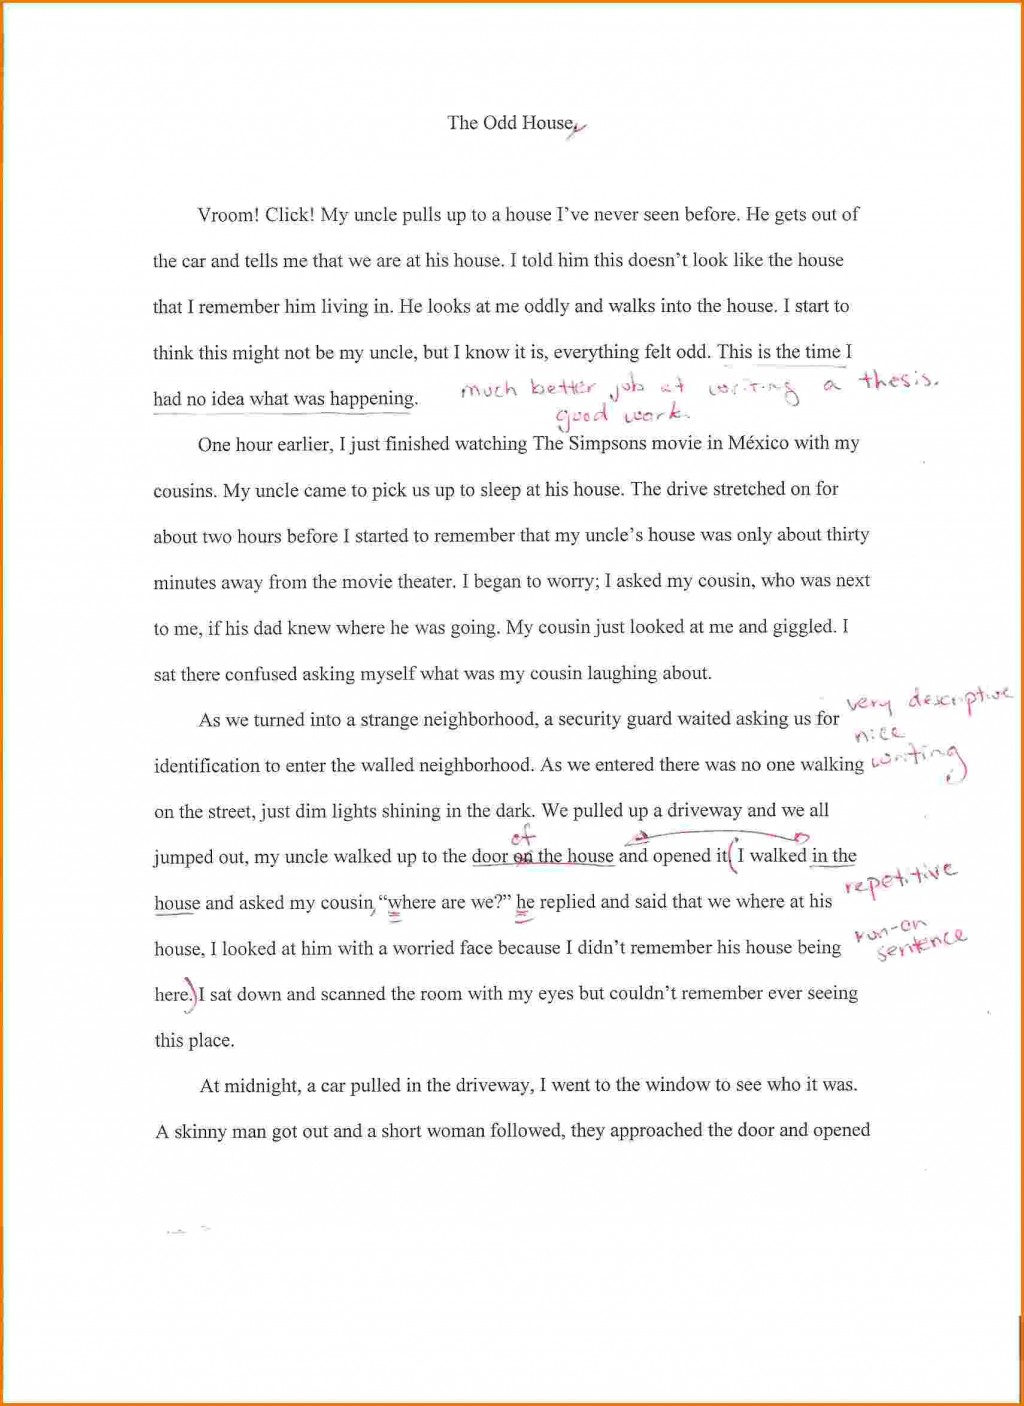 006 Essay Of Who Am I 2820472608 Family Values Research Paper Awesome As A Person Filipino Writing Aim In Life Large